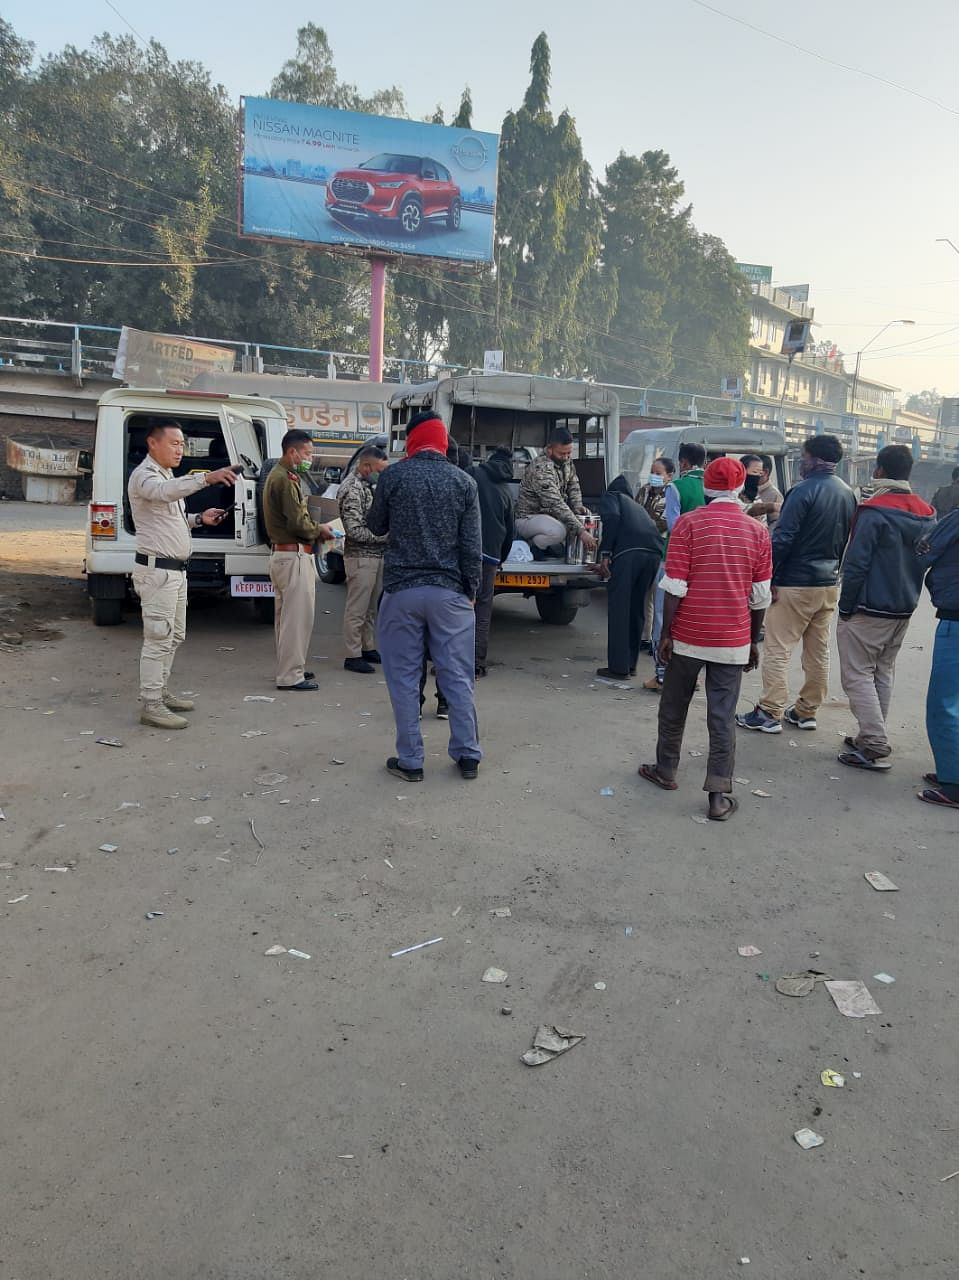 People waiting in line to get their cup of coffee served by Dimapur Police